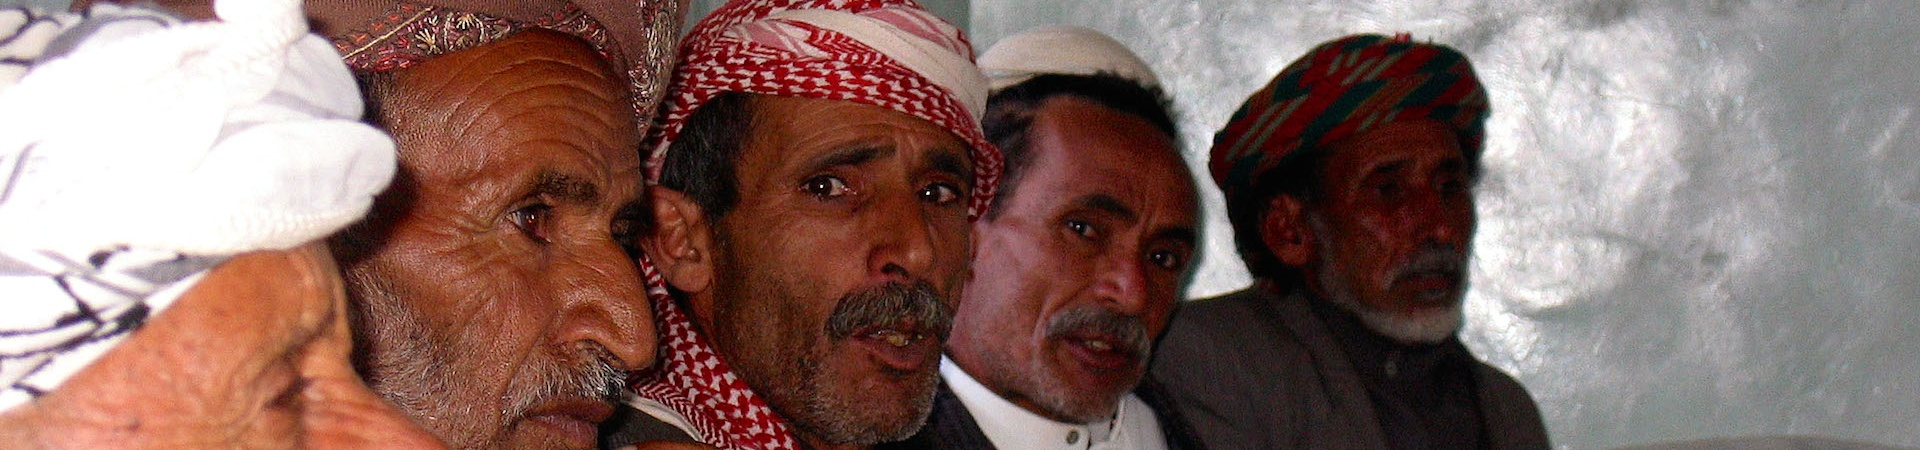 North Yemen, men chewing kath.